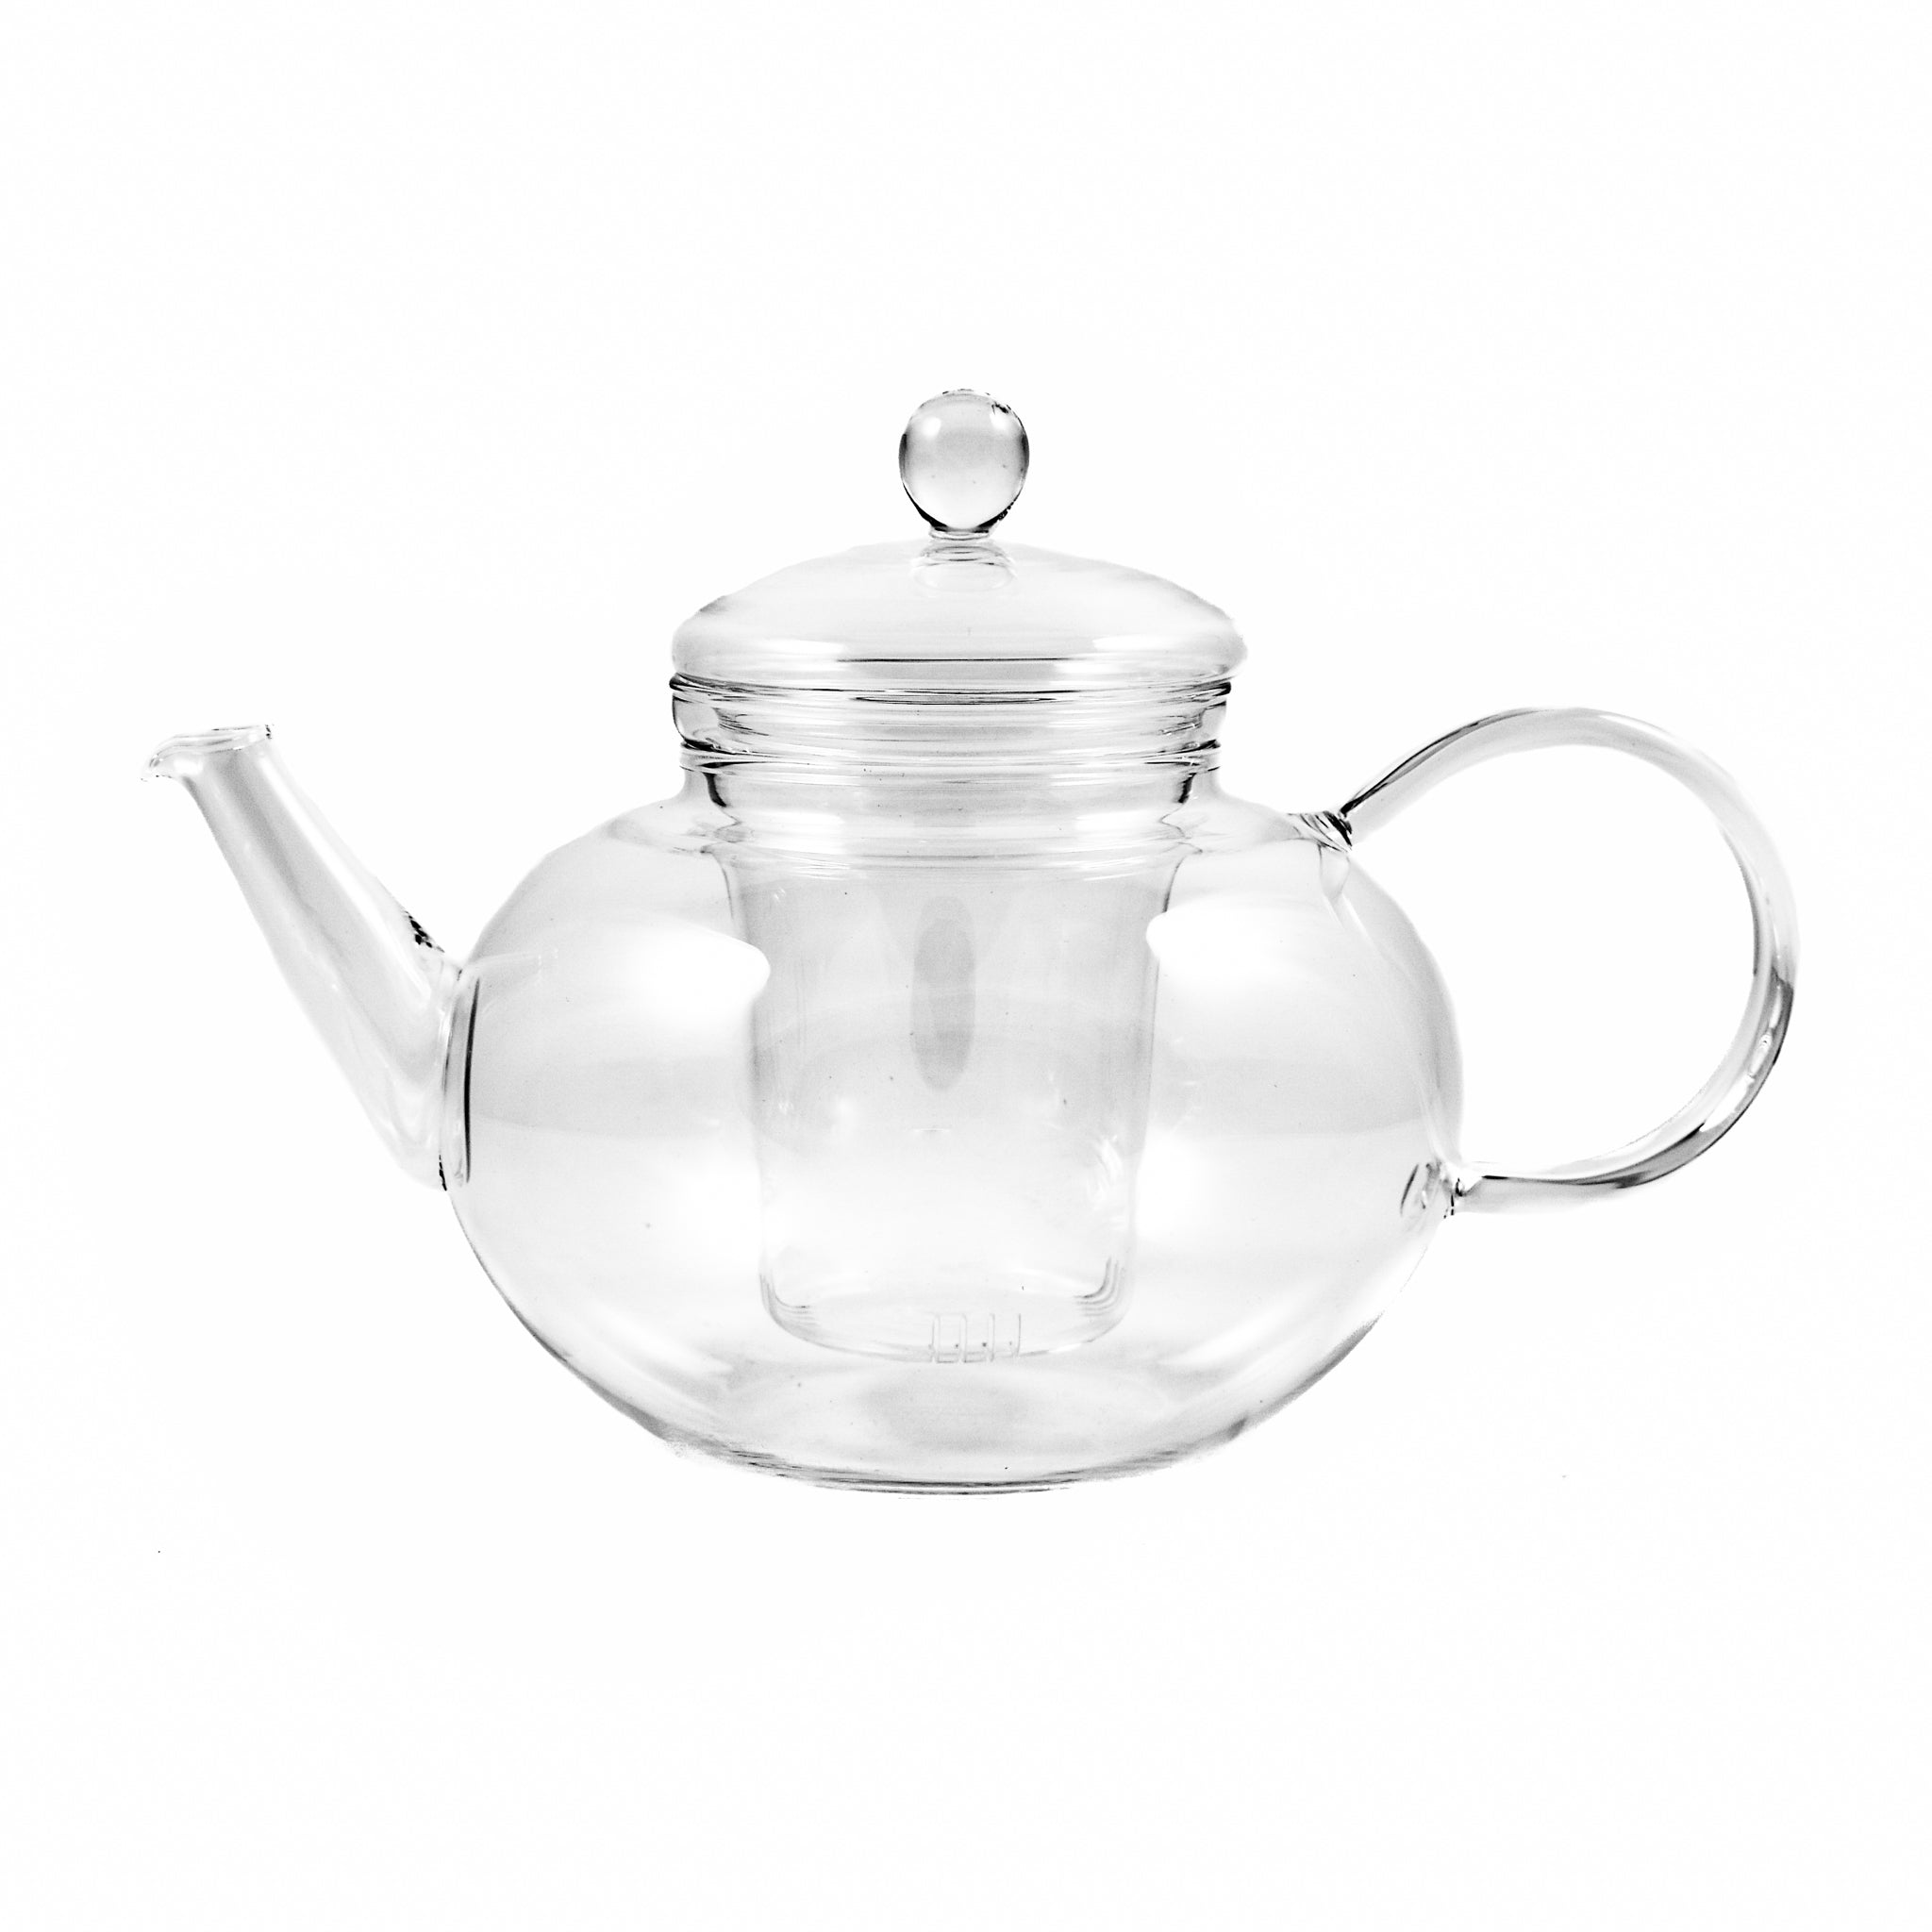 Trendglas Round Glass Teapot & Strainer 1.2 litres Tableware Jugs & Glassware